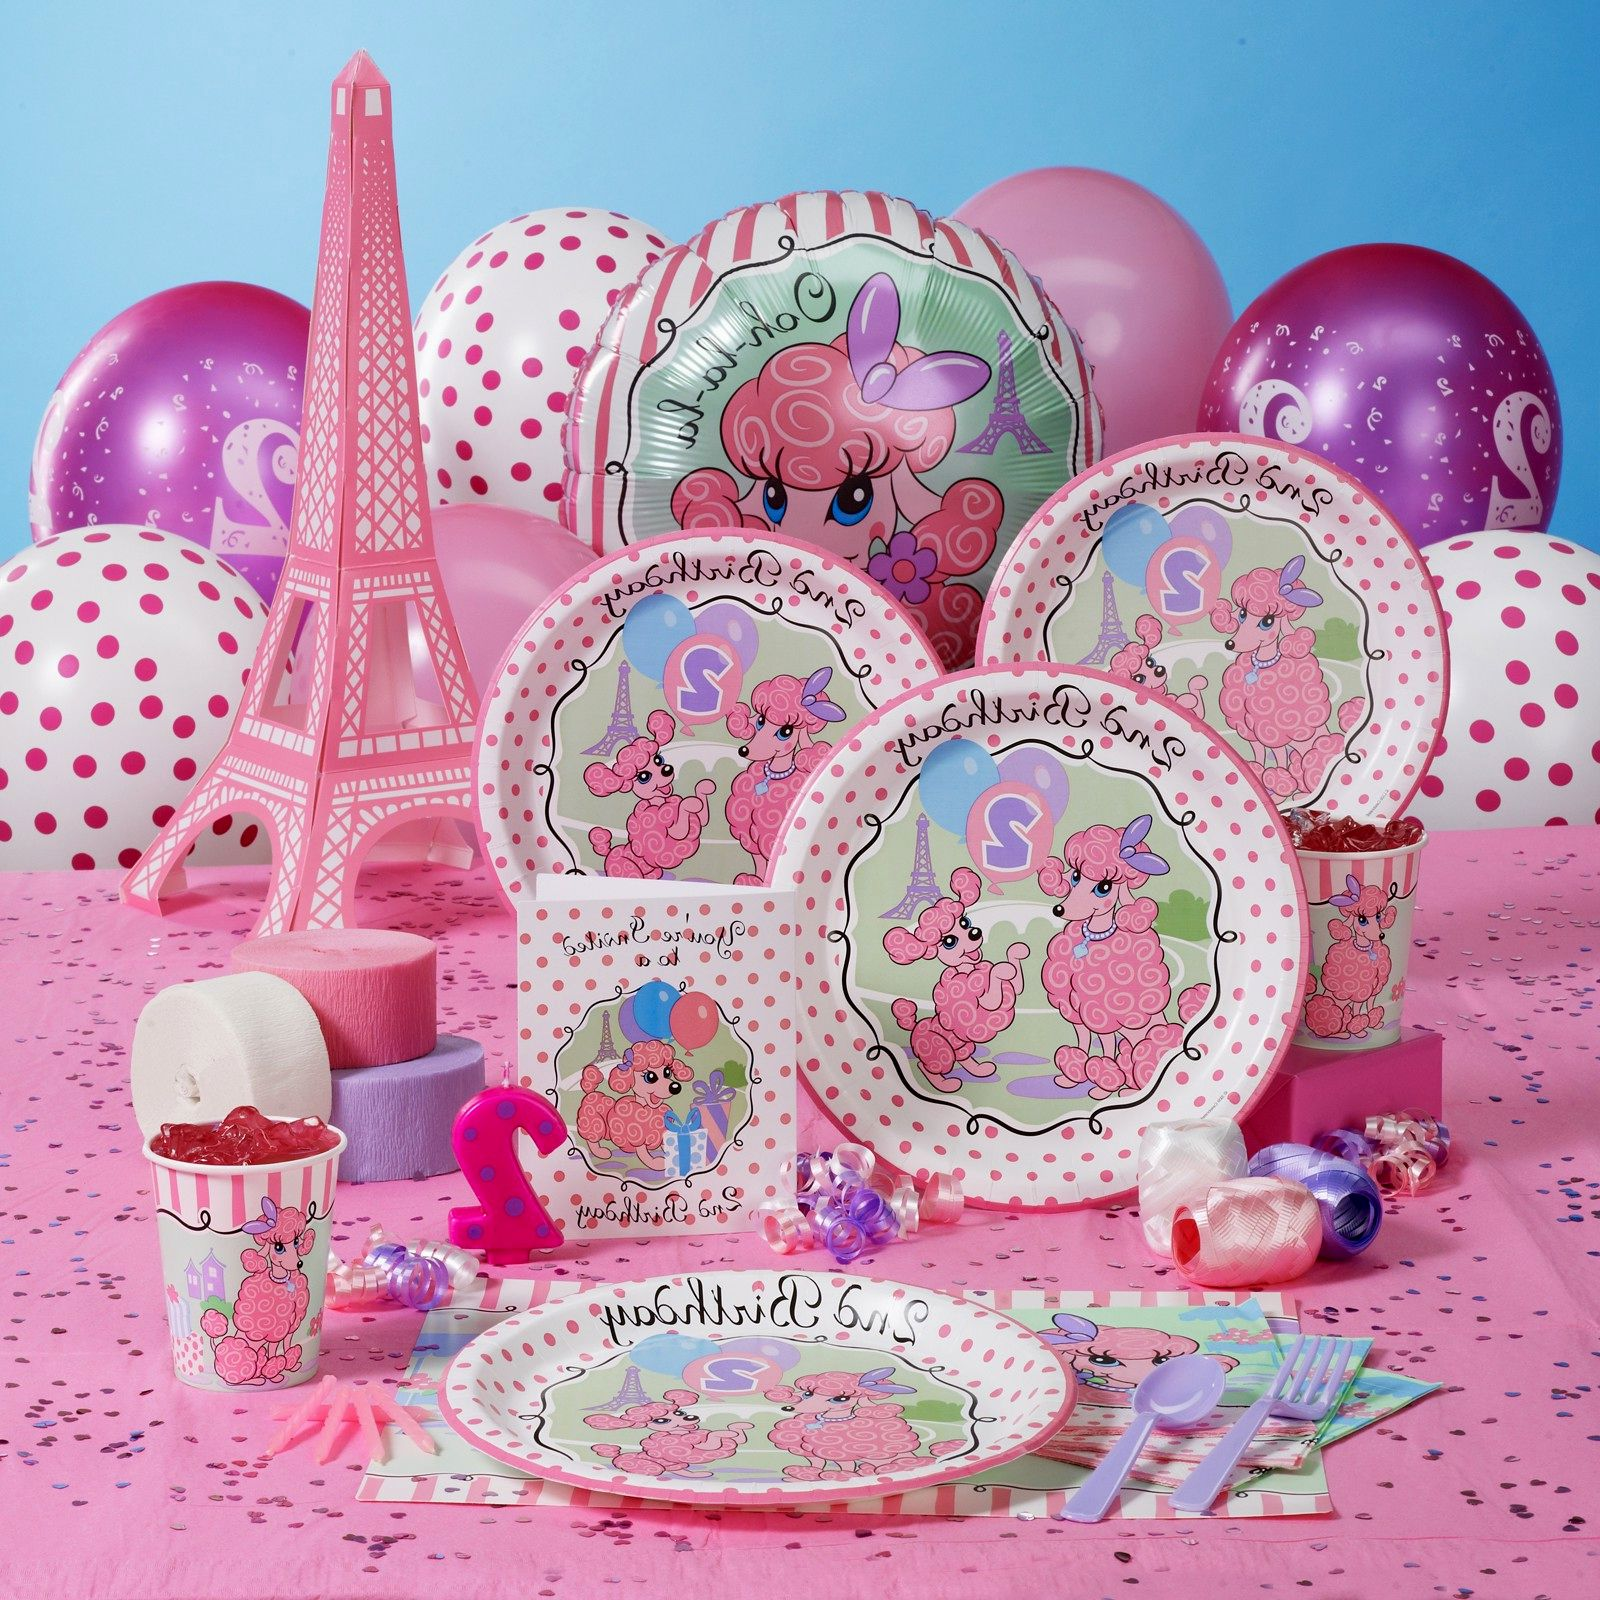 second birthday theme for girl ; second-birthday-party-themes-for-girl-second-birthday-party-themes-for-girl